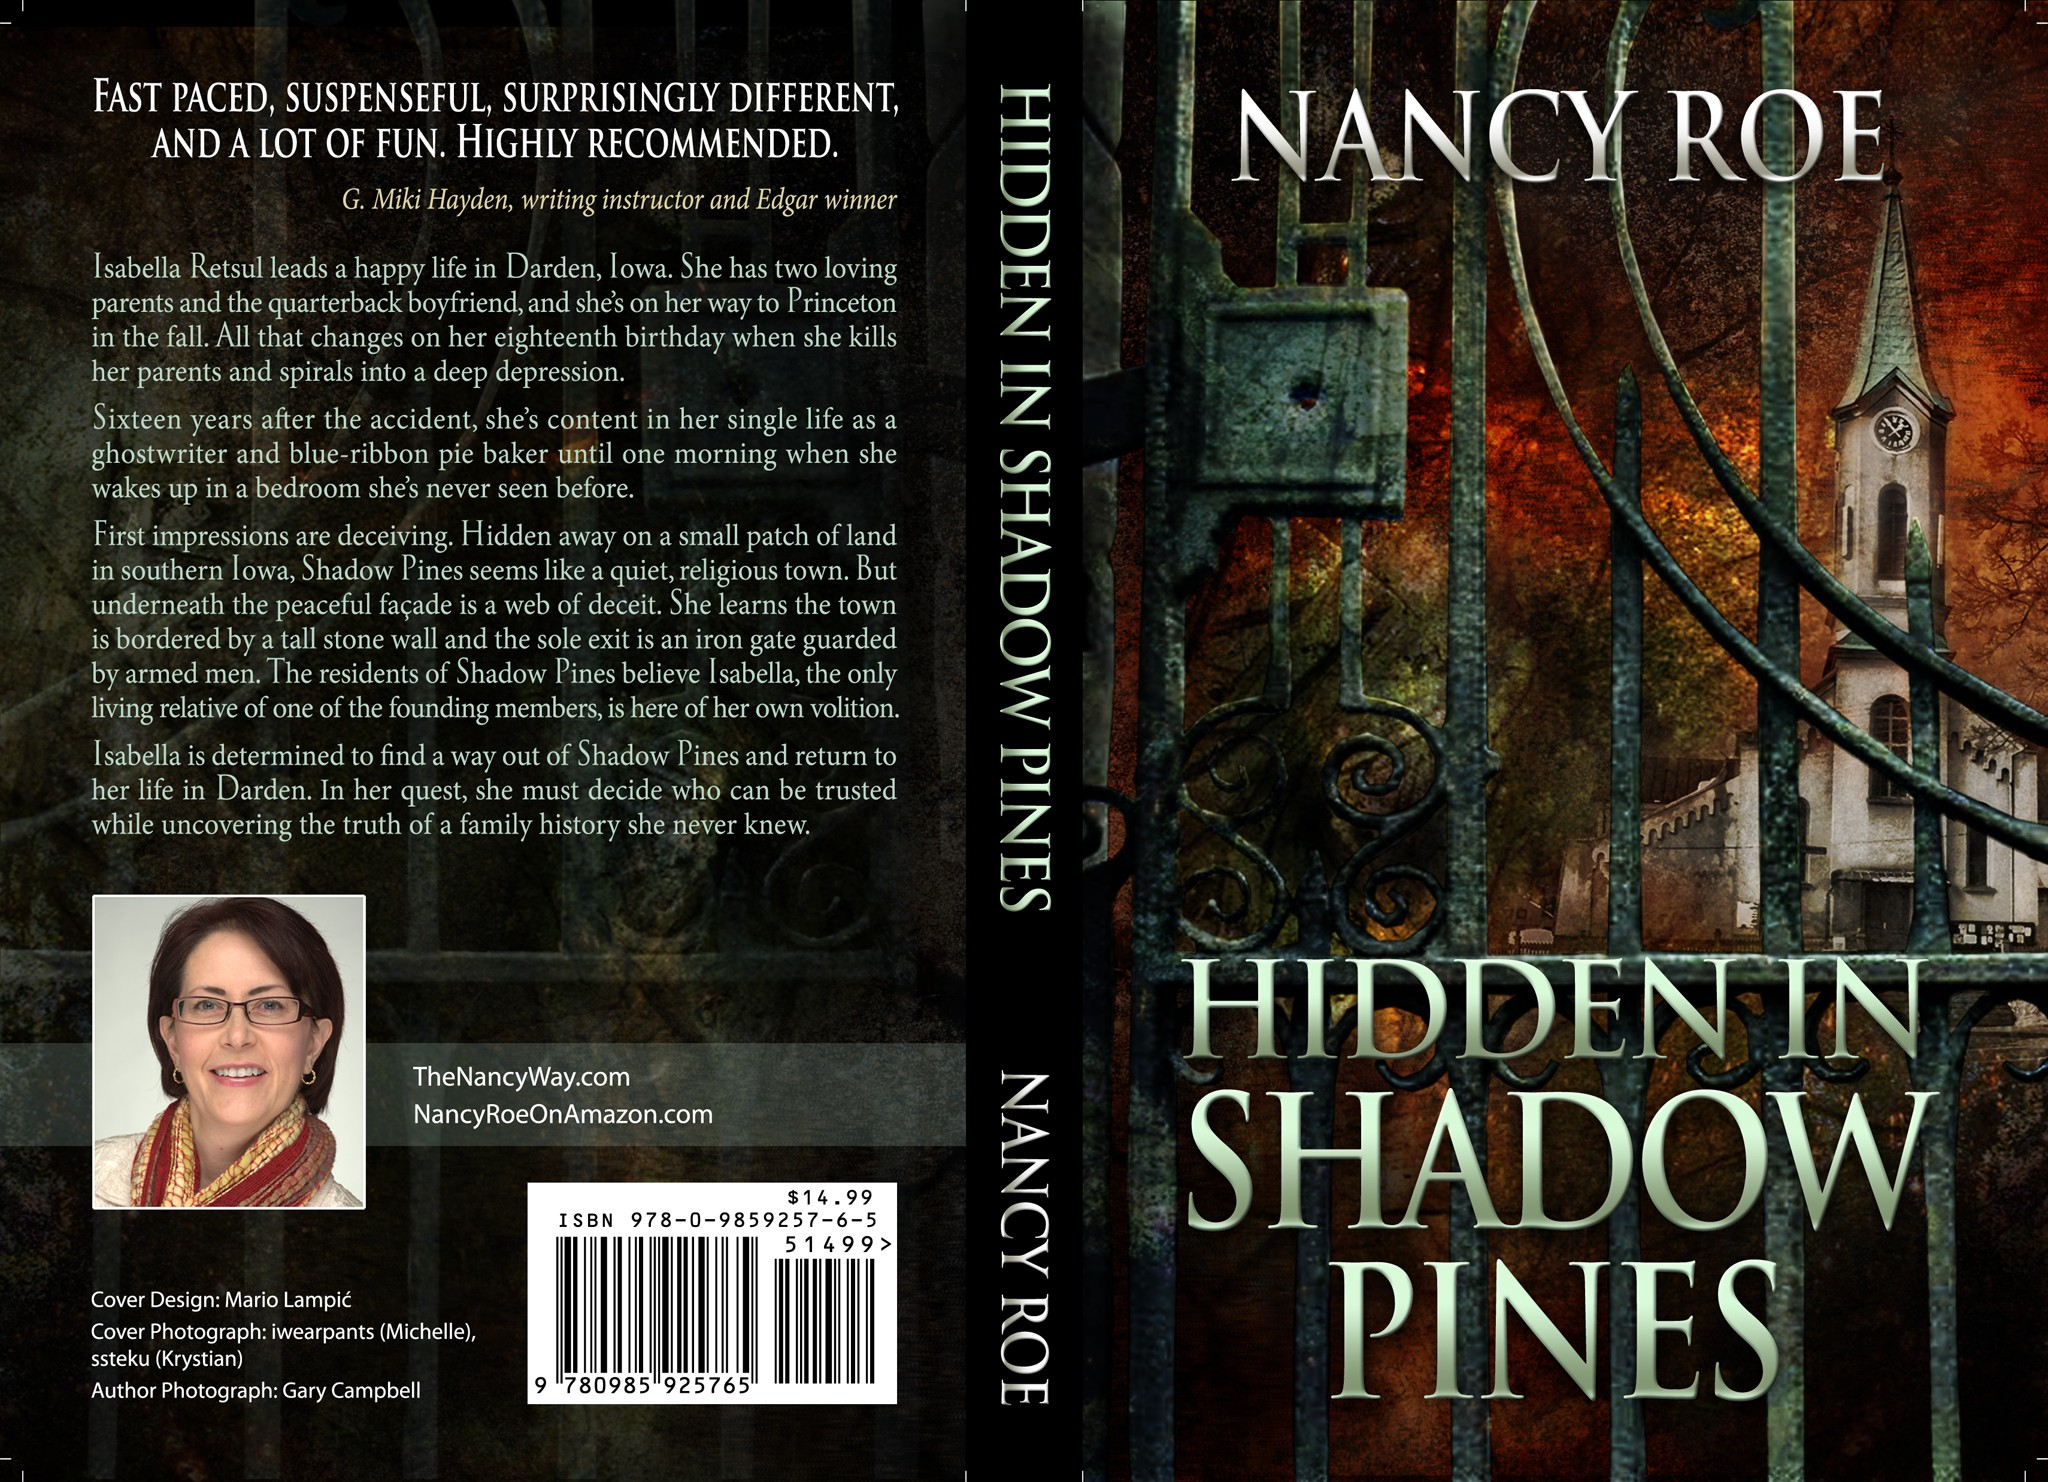 Book Cover for Hidden in Shadow Pines